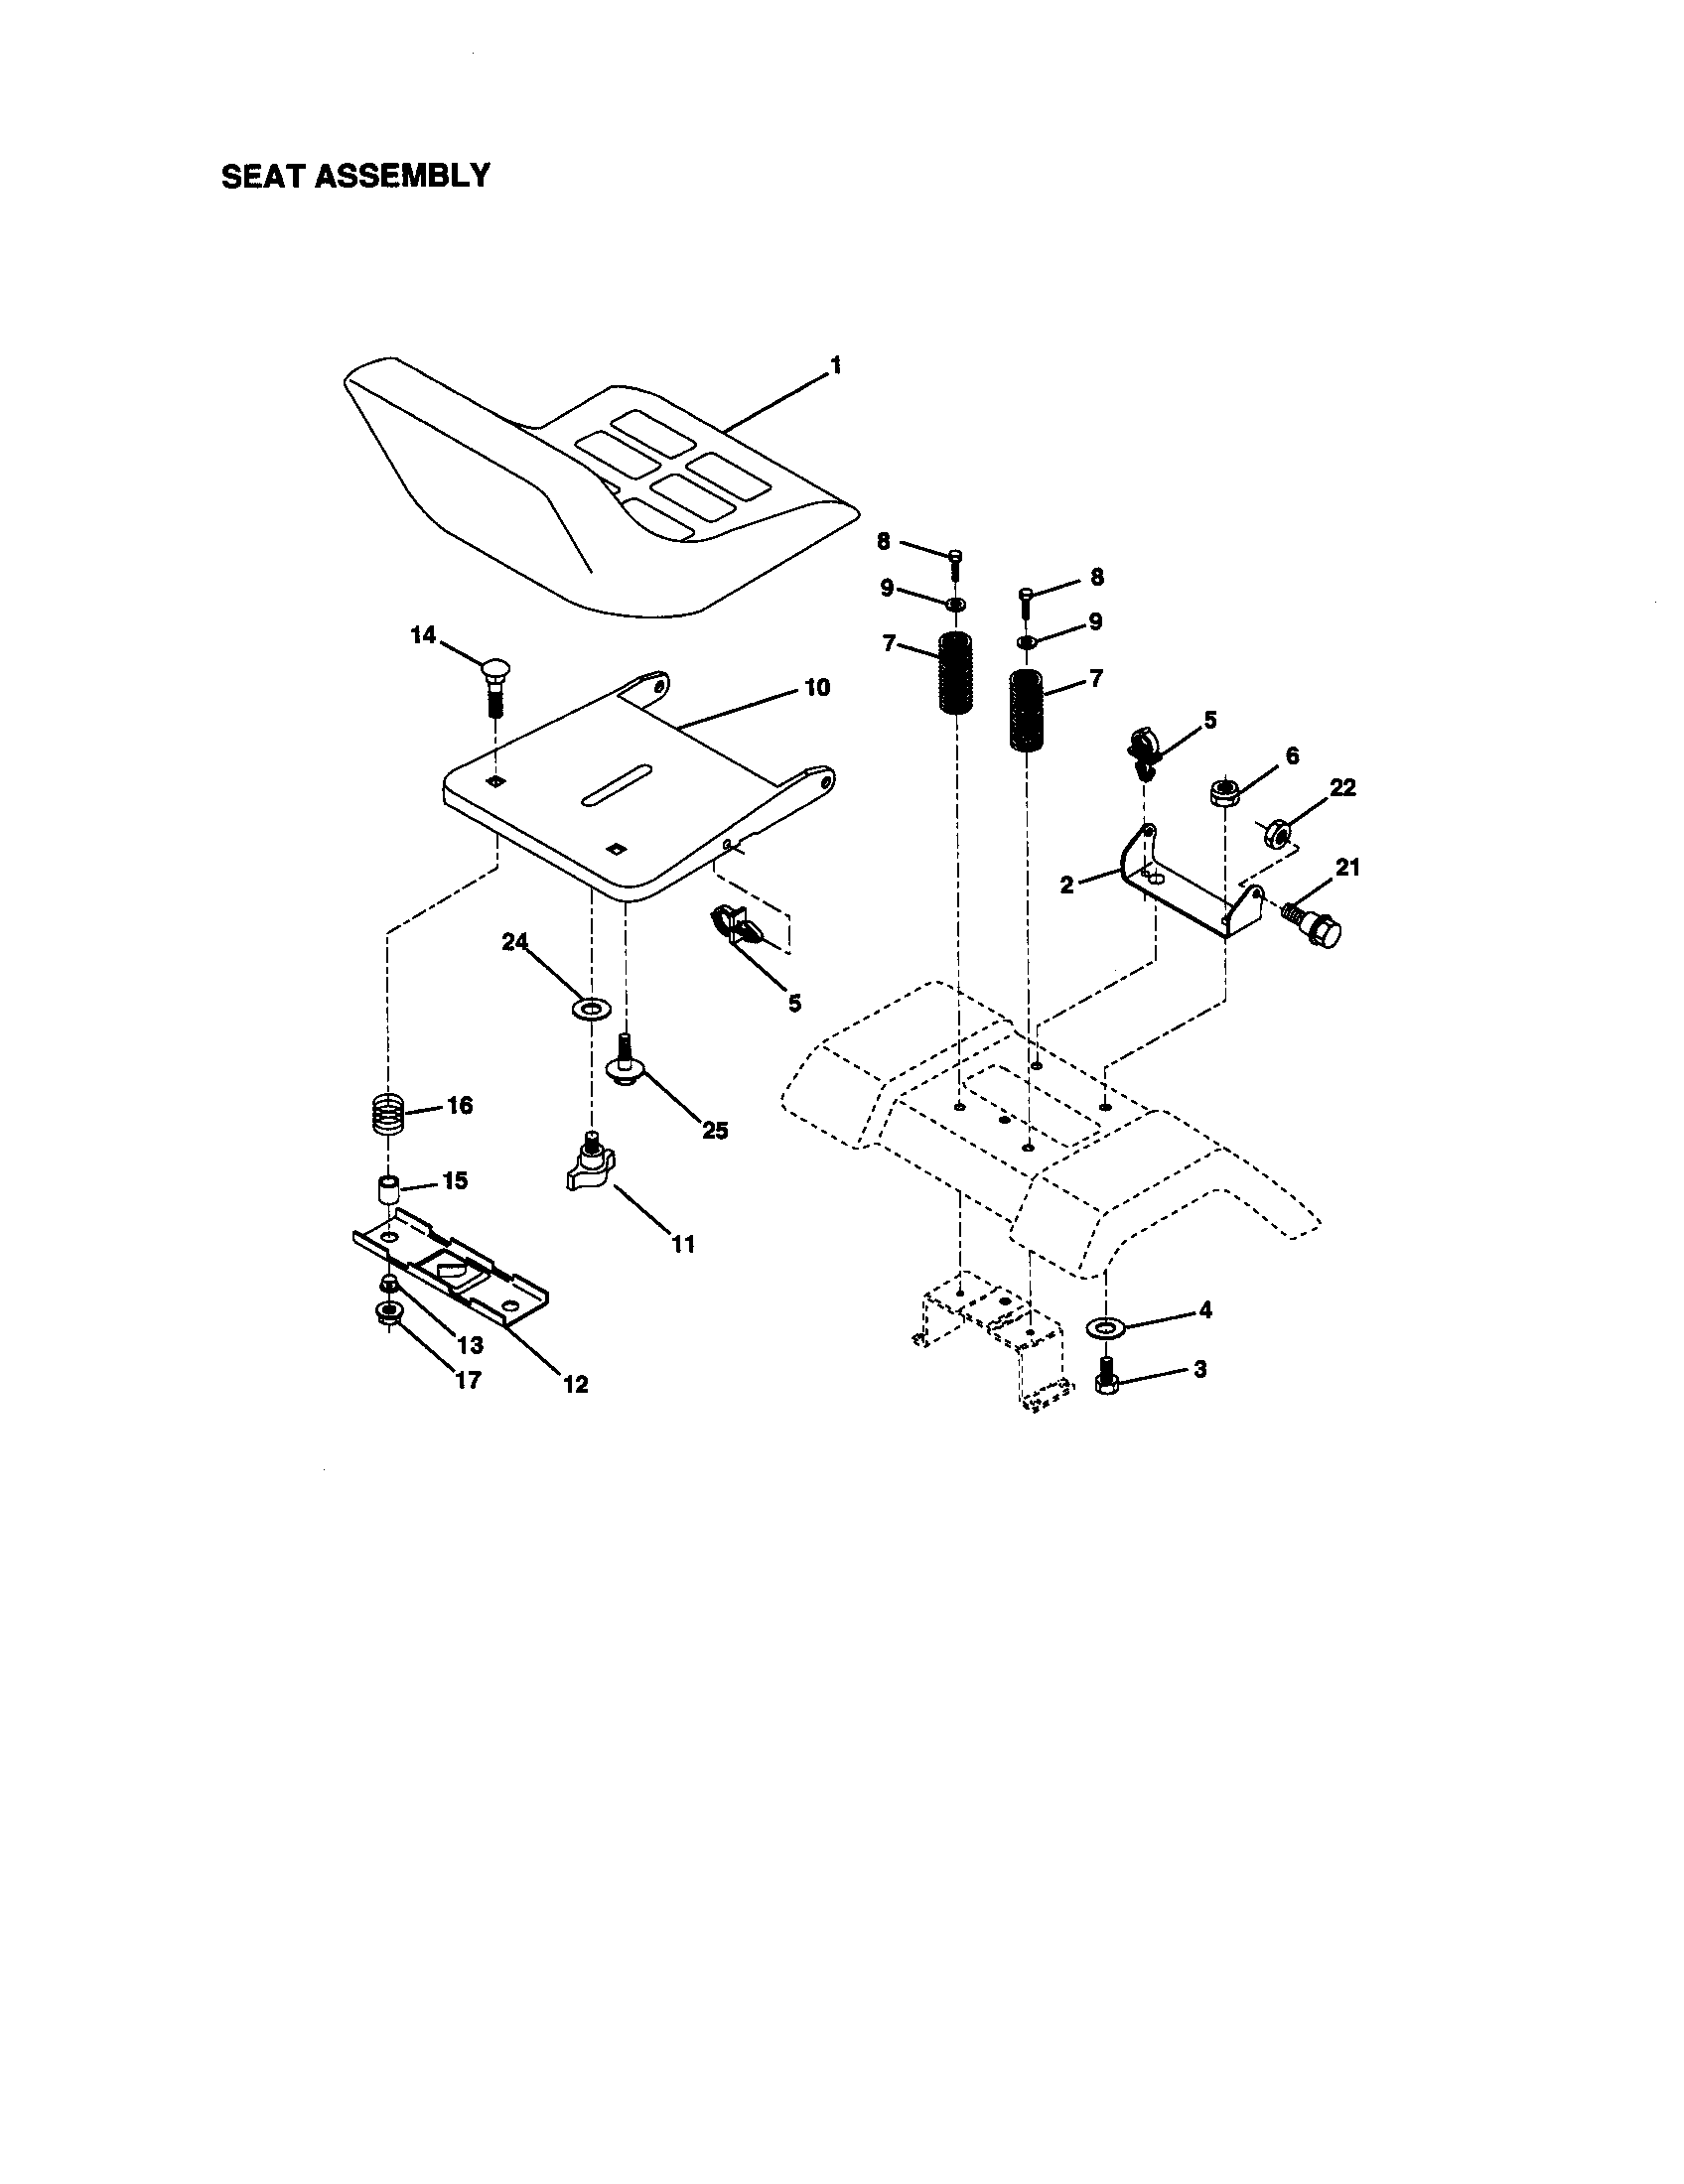 Craftsman 917270923 seat assembly diagram